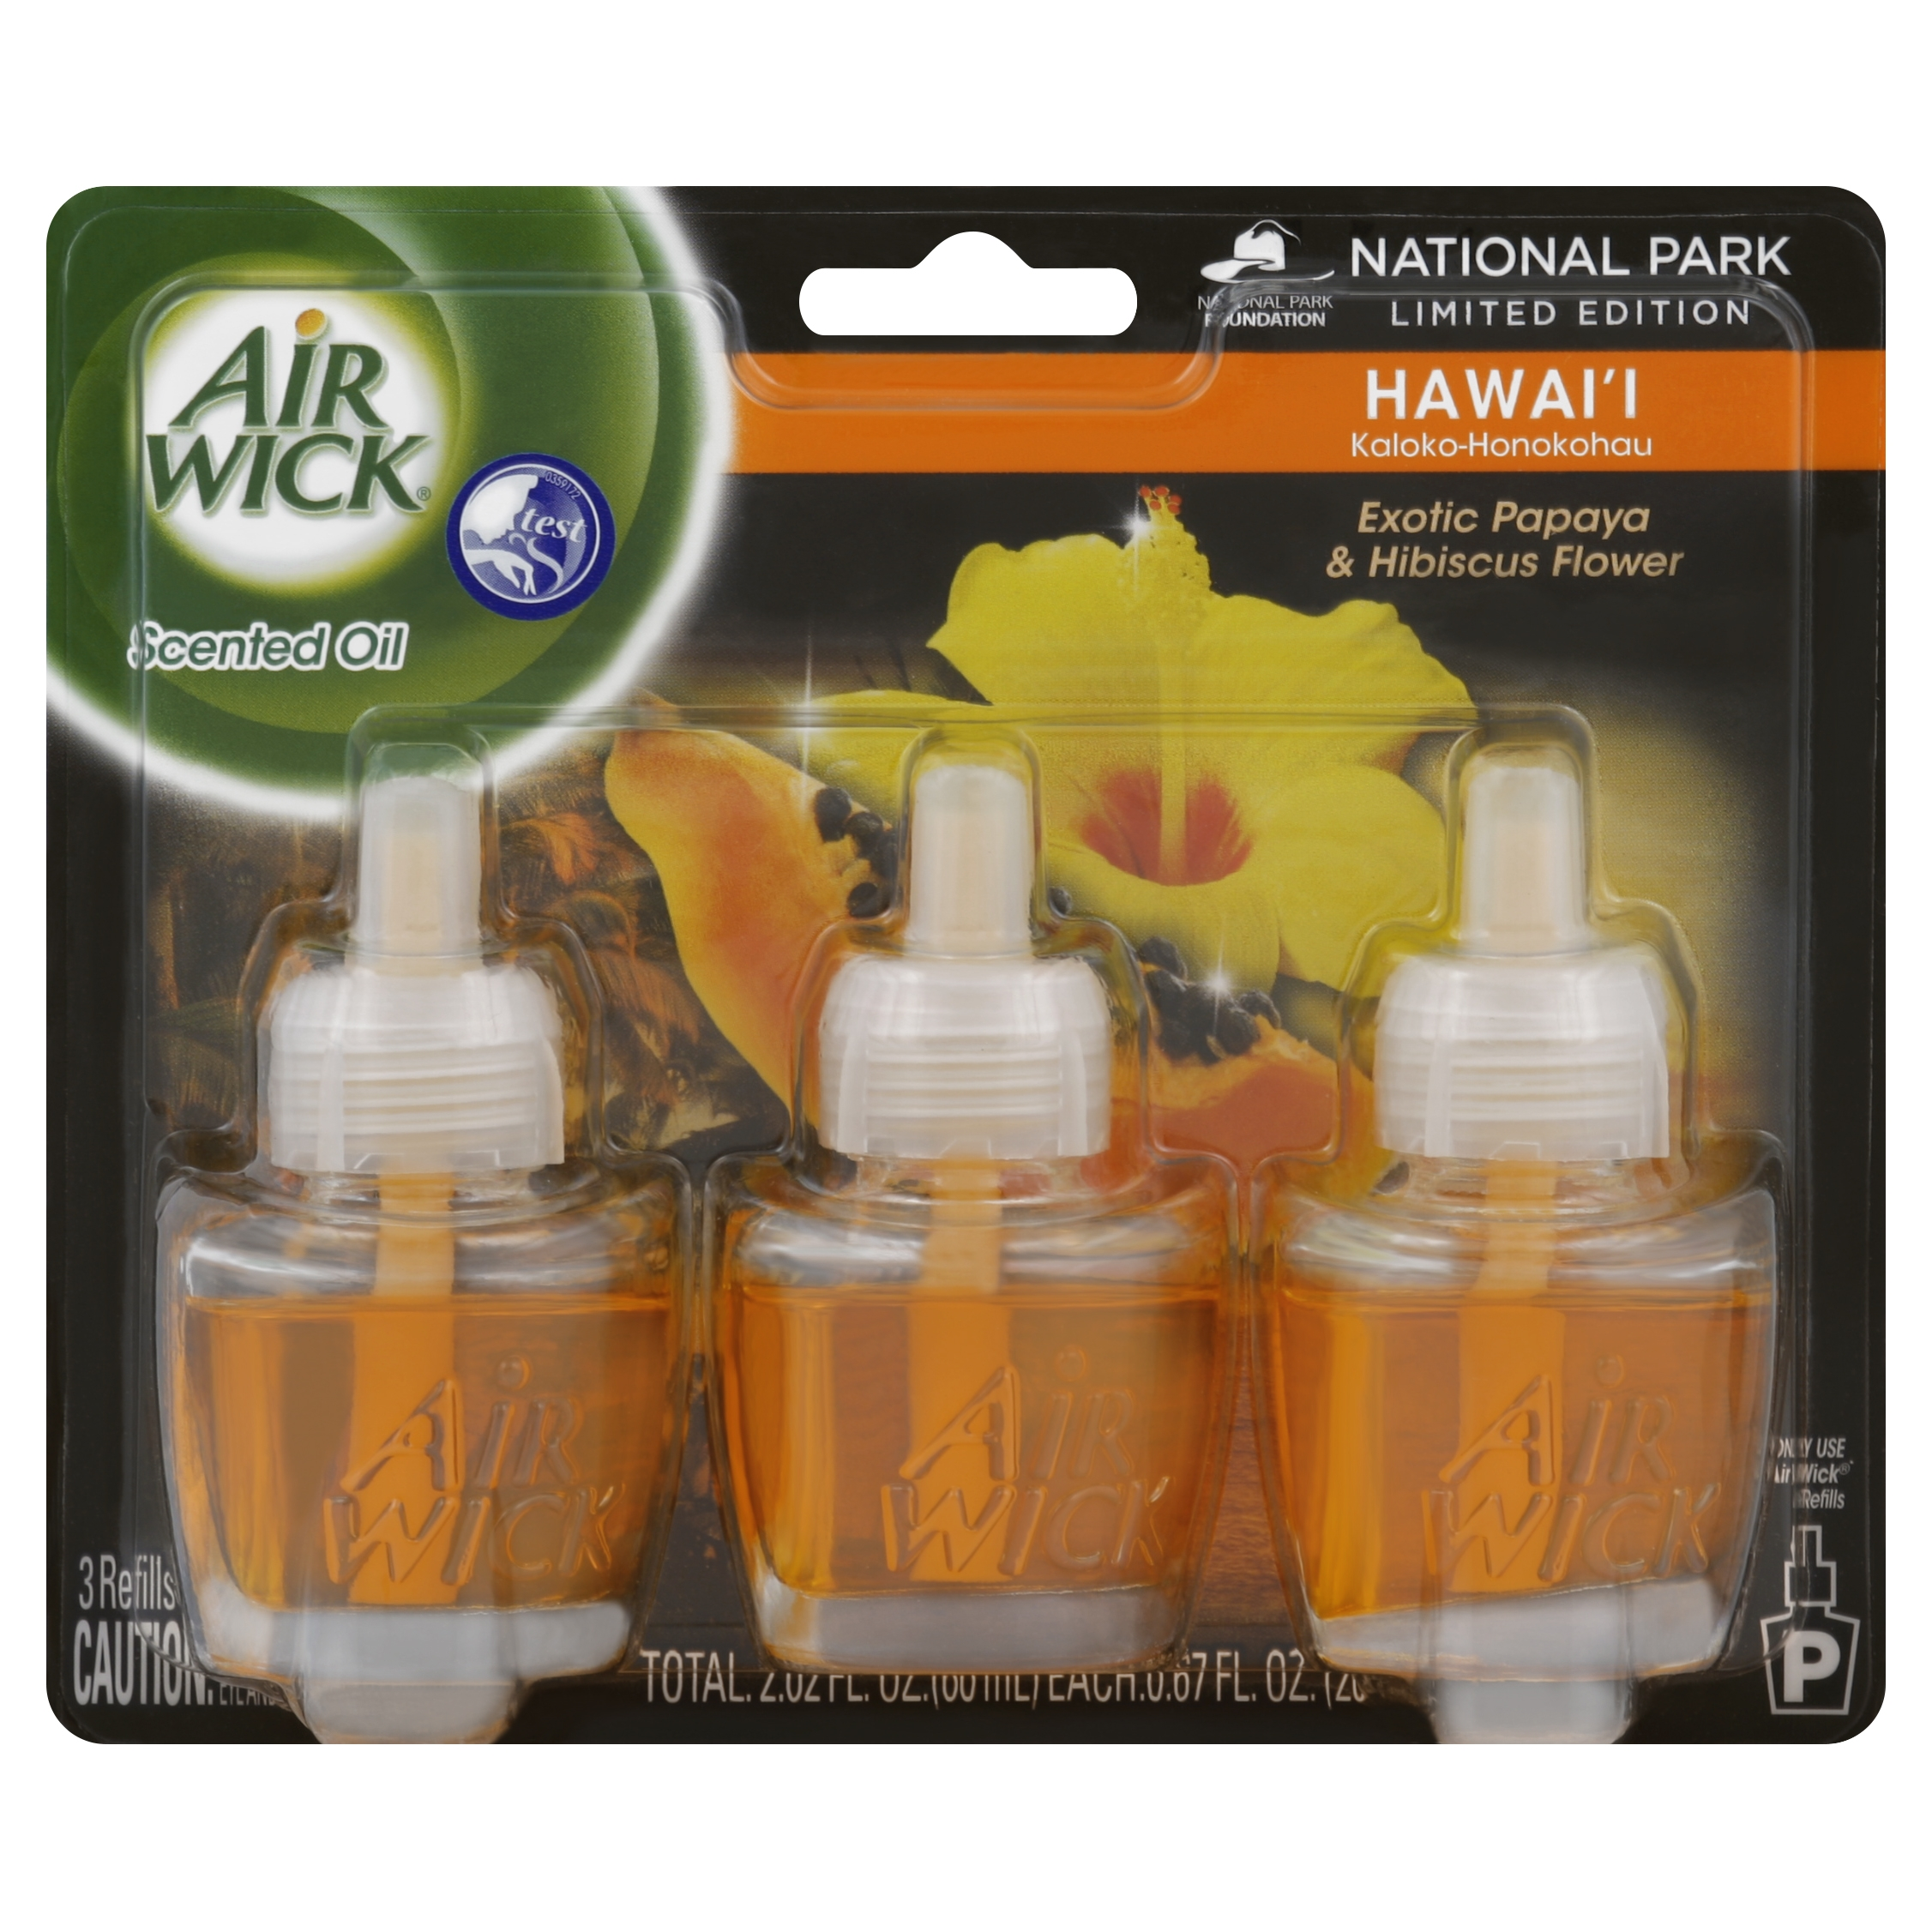 Air Wick Scented Oil Air Freshener, National Park Collection, Hawaii Scent, Triple Refills, 0.67 Ounce